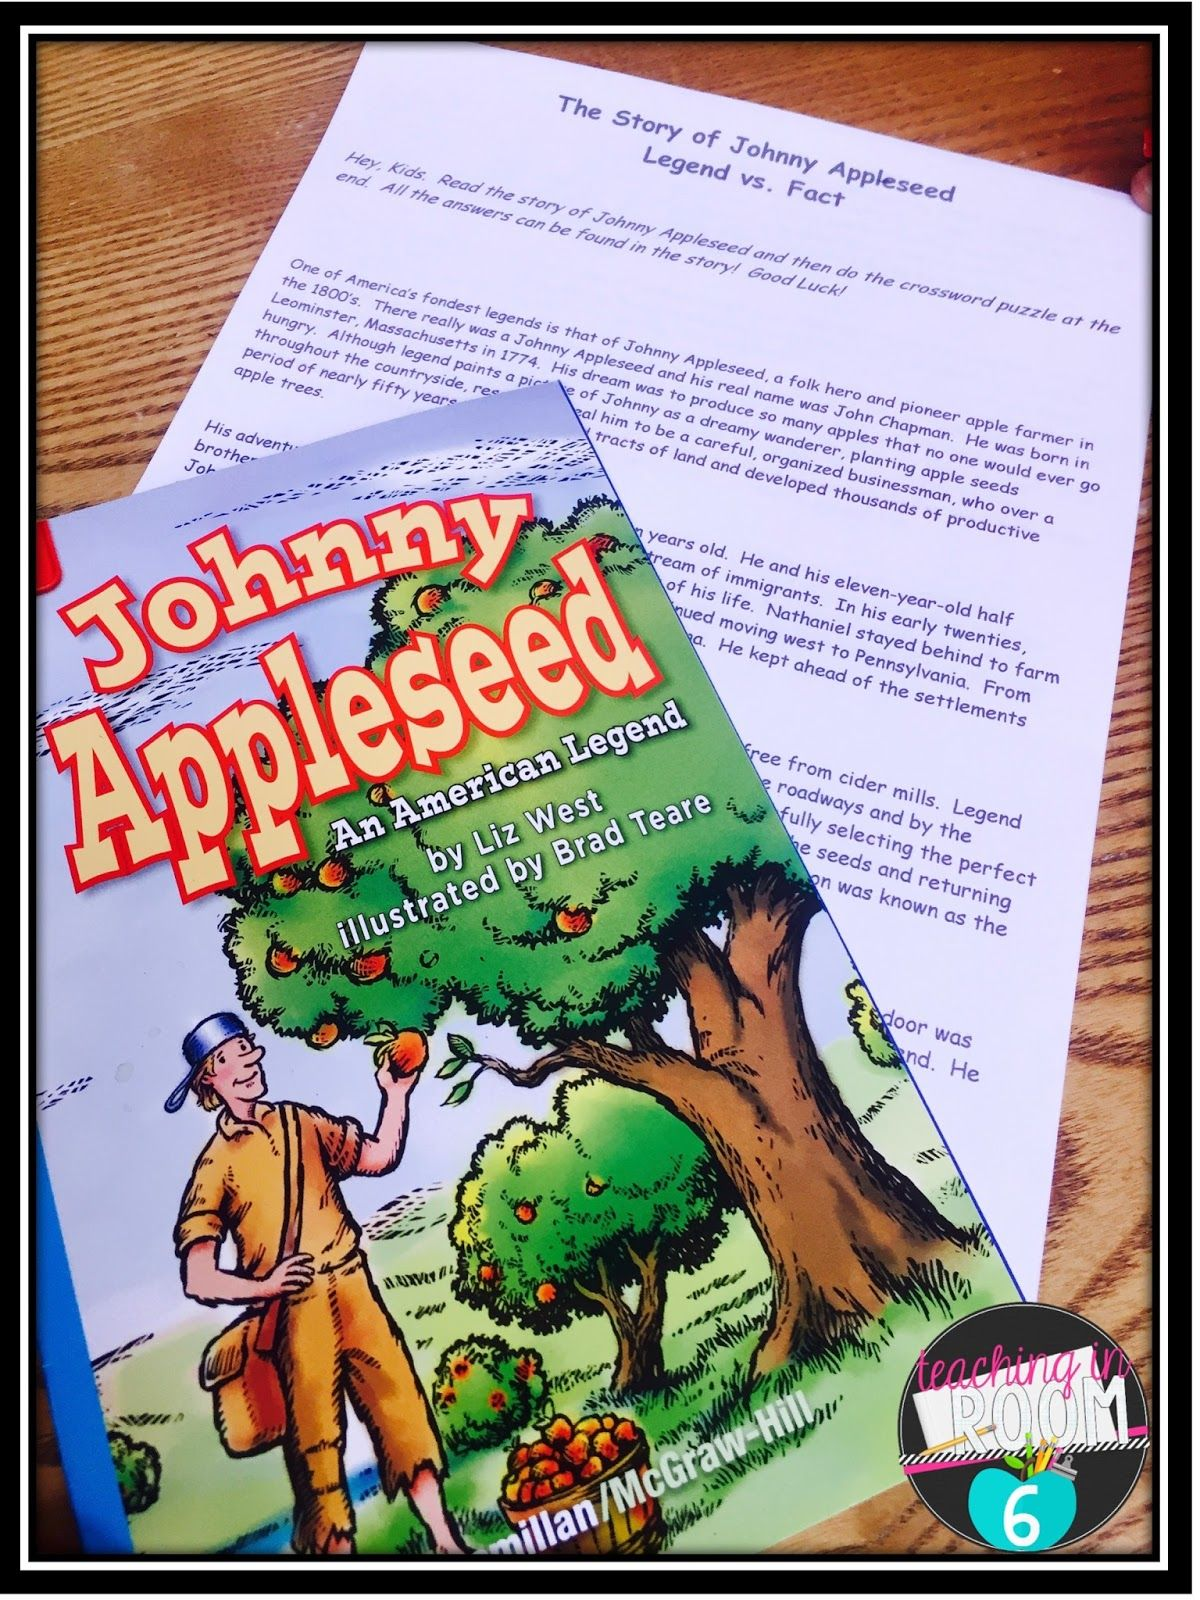 Paired Texts To Learn About Johnny Appleseed